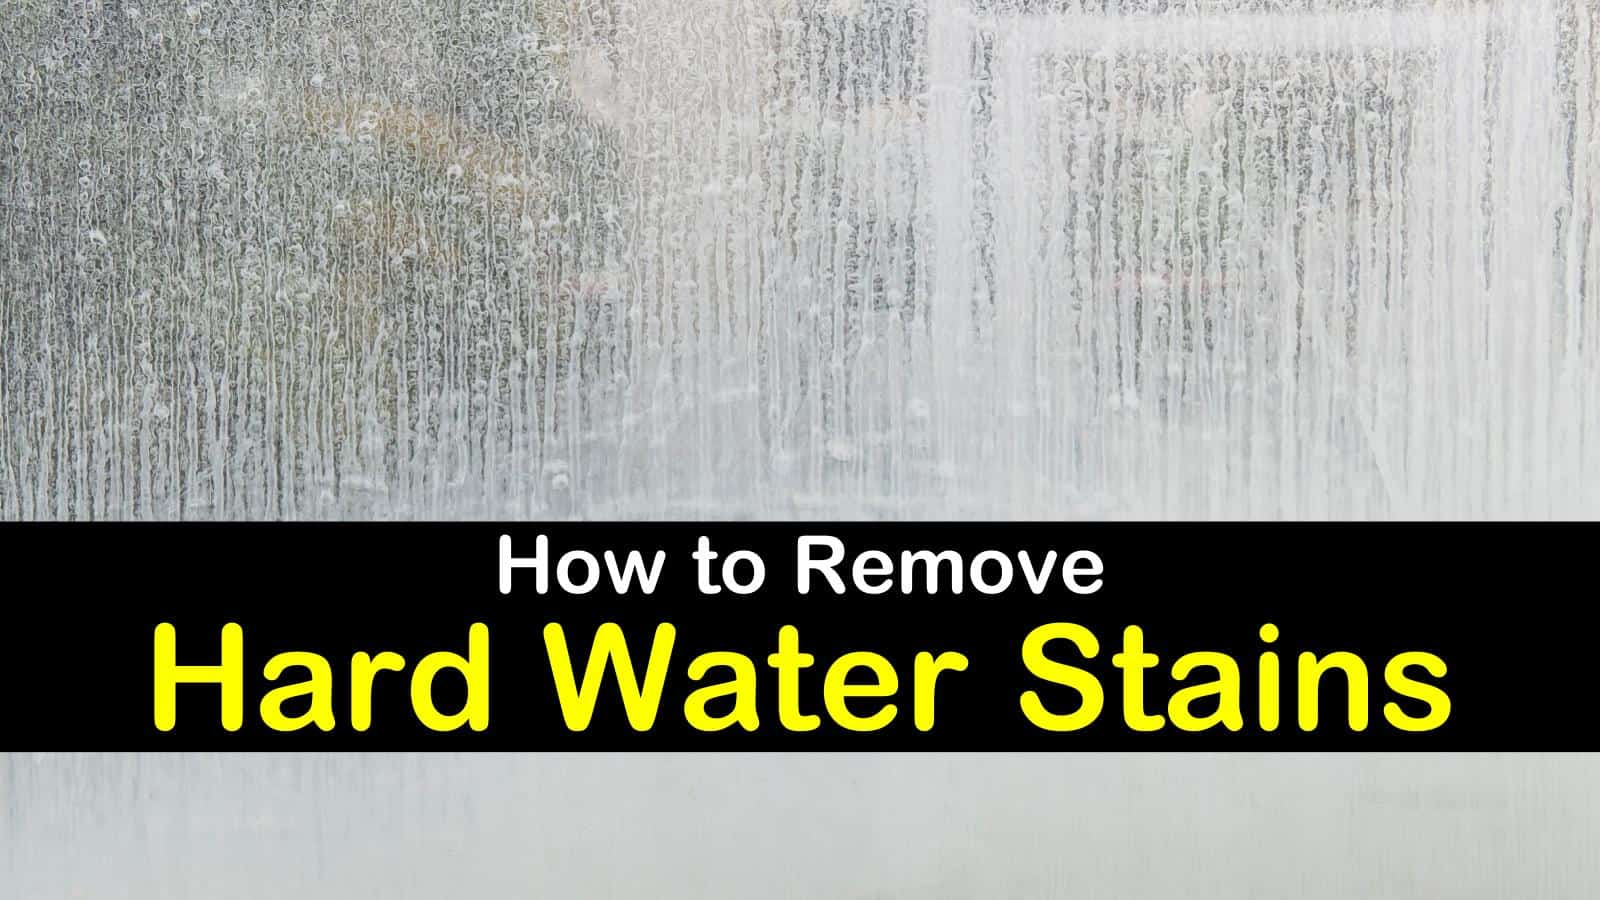 how to remove hard water stains titlimg1